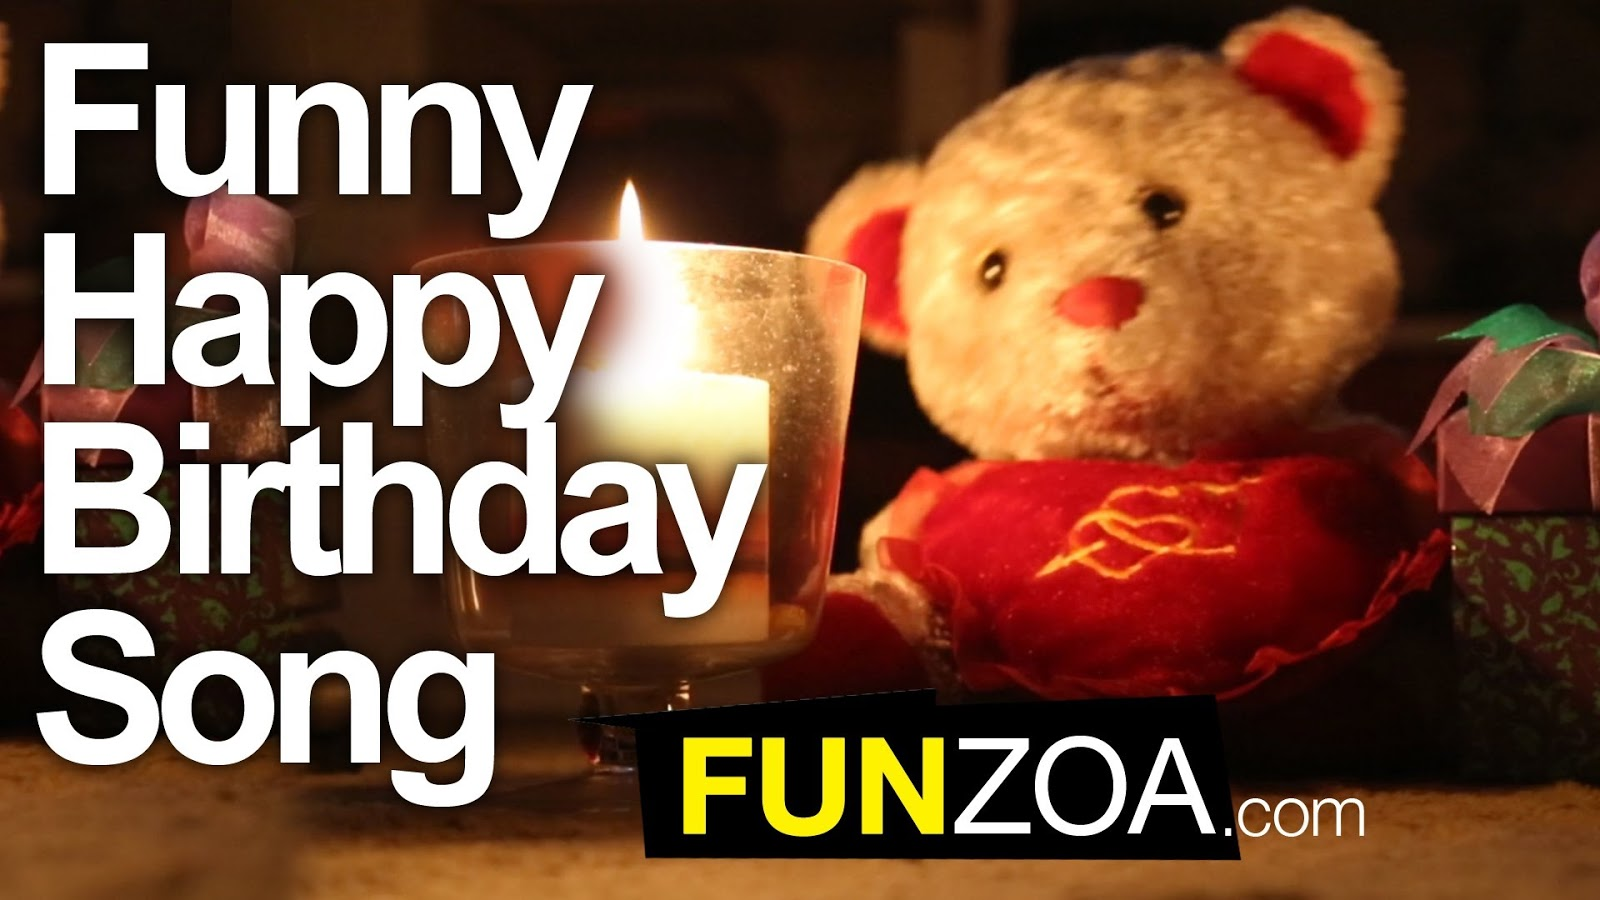 E-Ka: Funny Happy Birthday Song by Funzoa bear -Lyrics